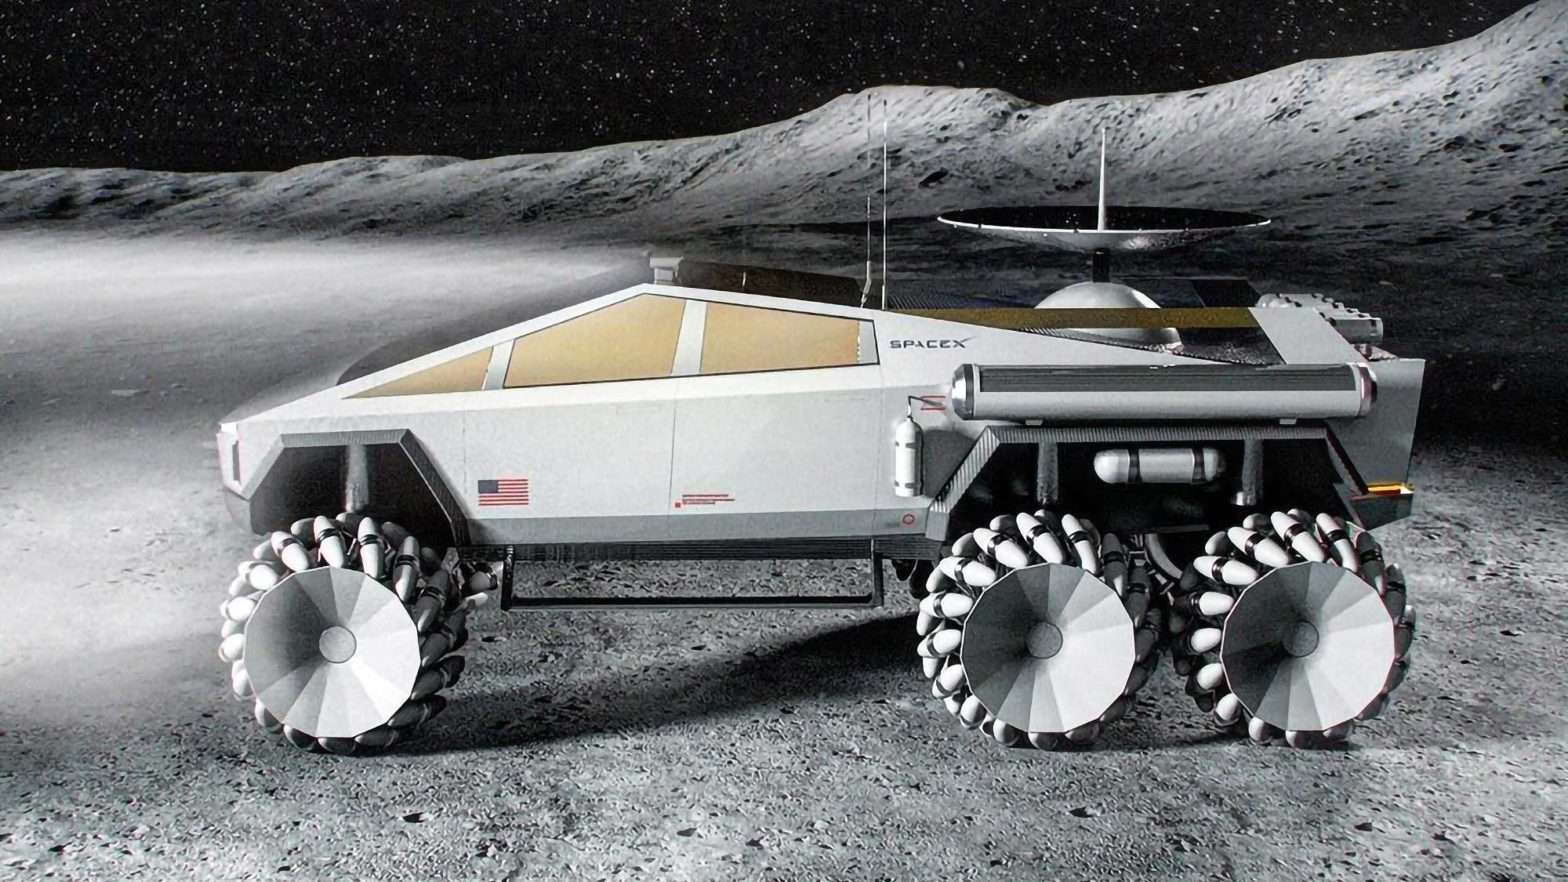 SpaceX Cyber6 Cybertruck Moonrover